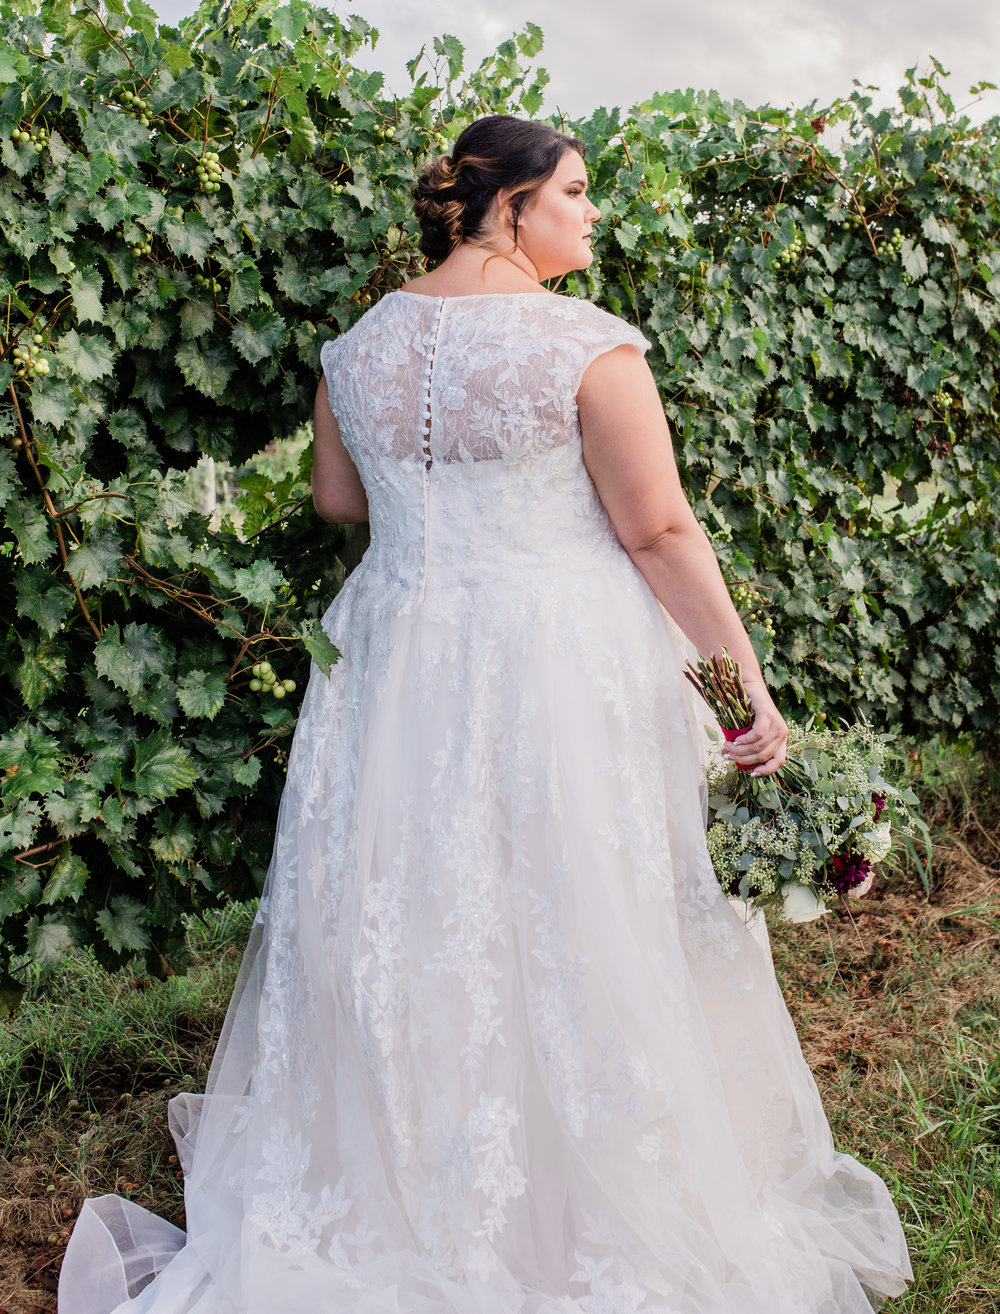 Brandi's Bridal Portraits at Chattooga Belle Farm | Palmetto State Weddings